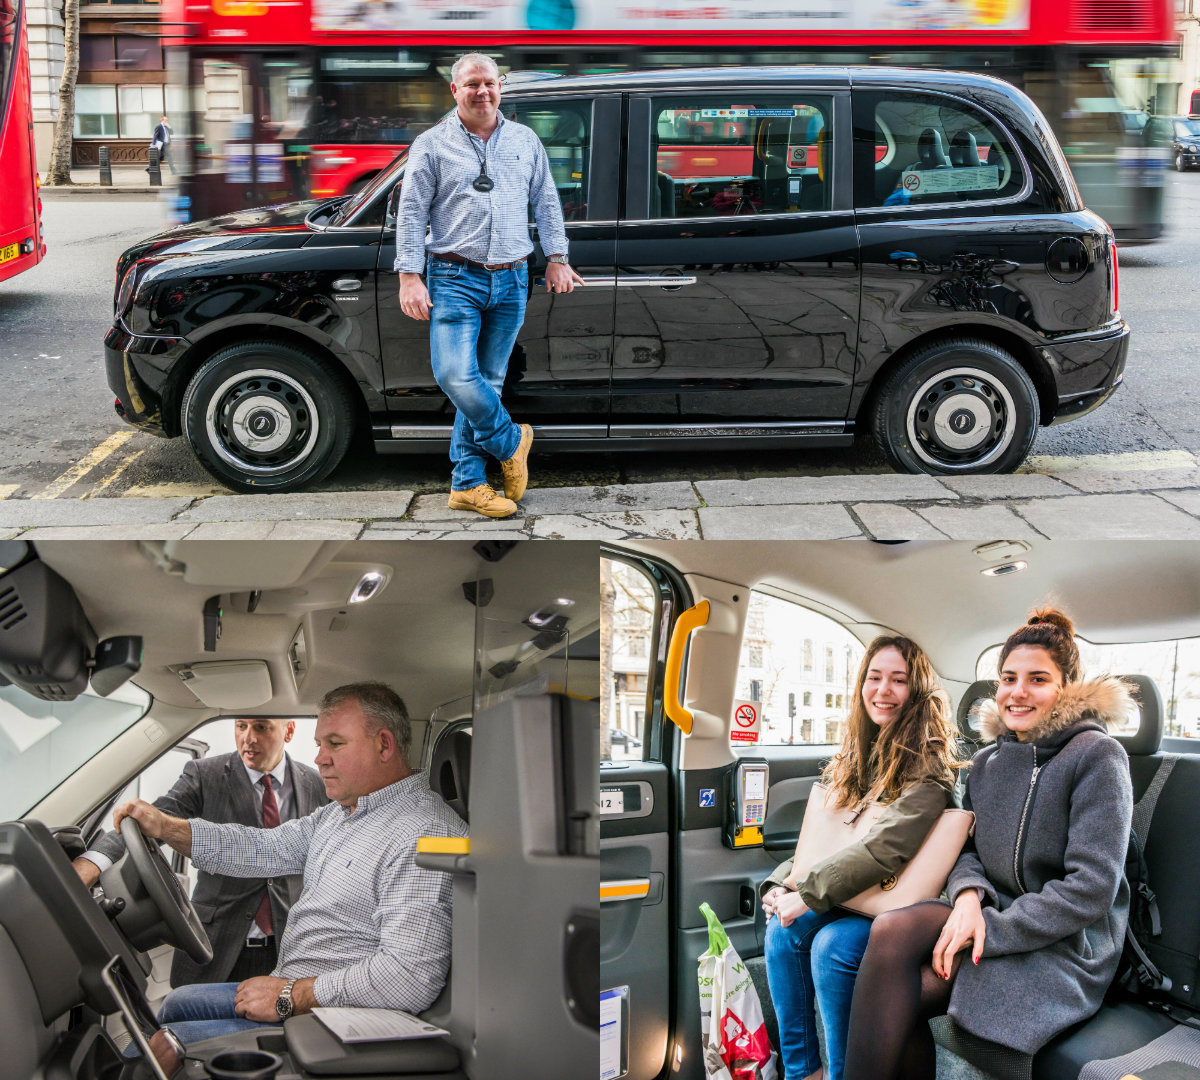 First Tx Electric Taxi Picks Up Its First Fare In London